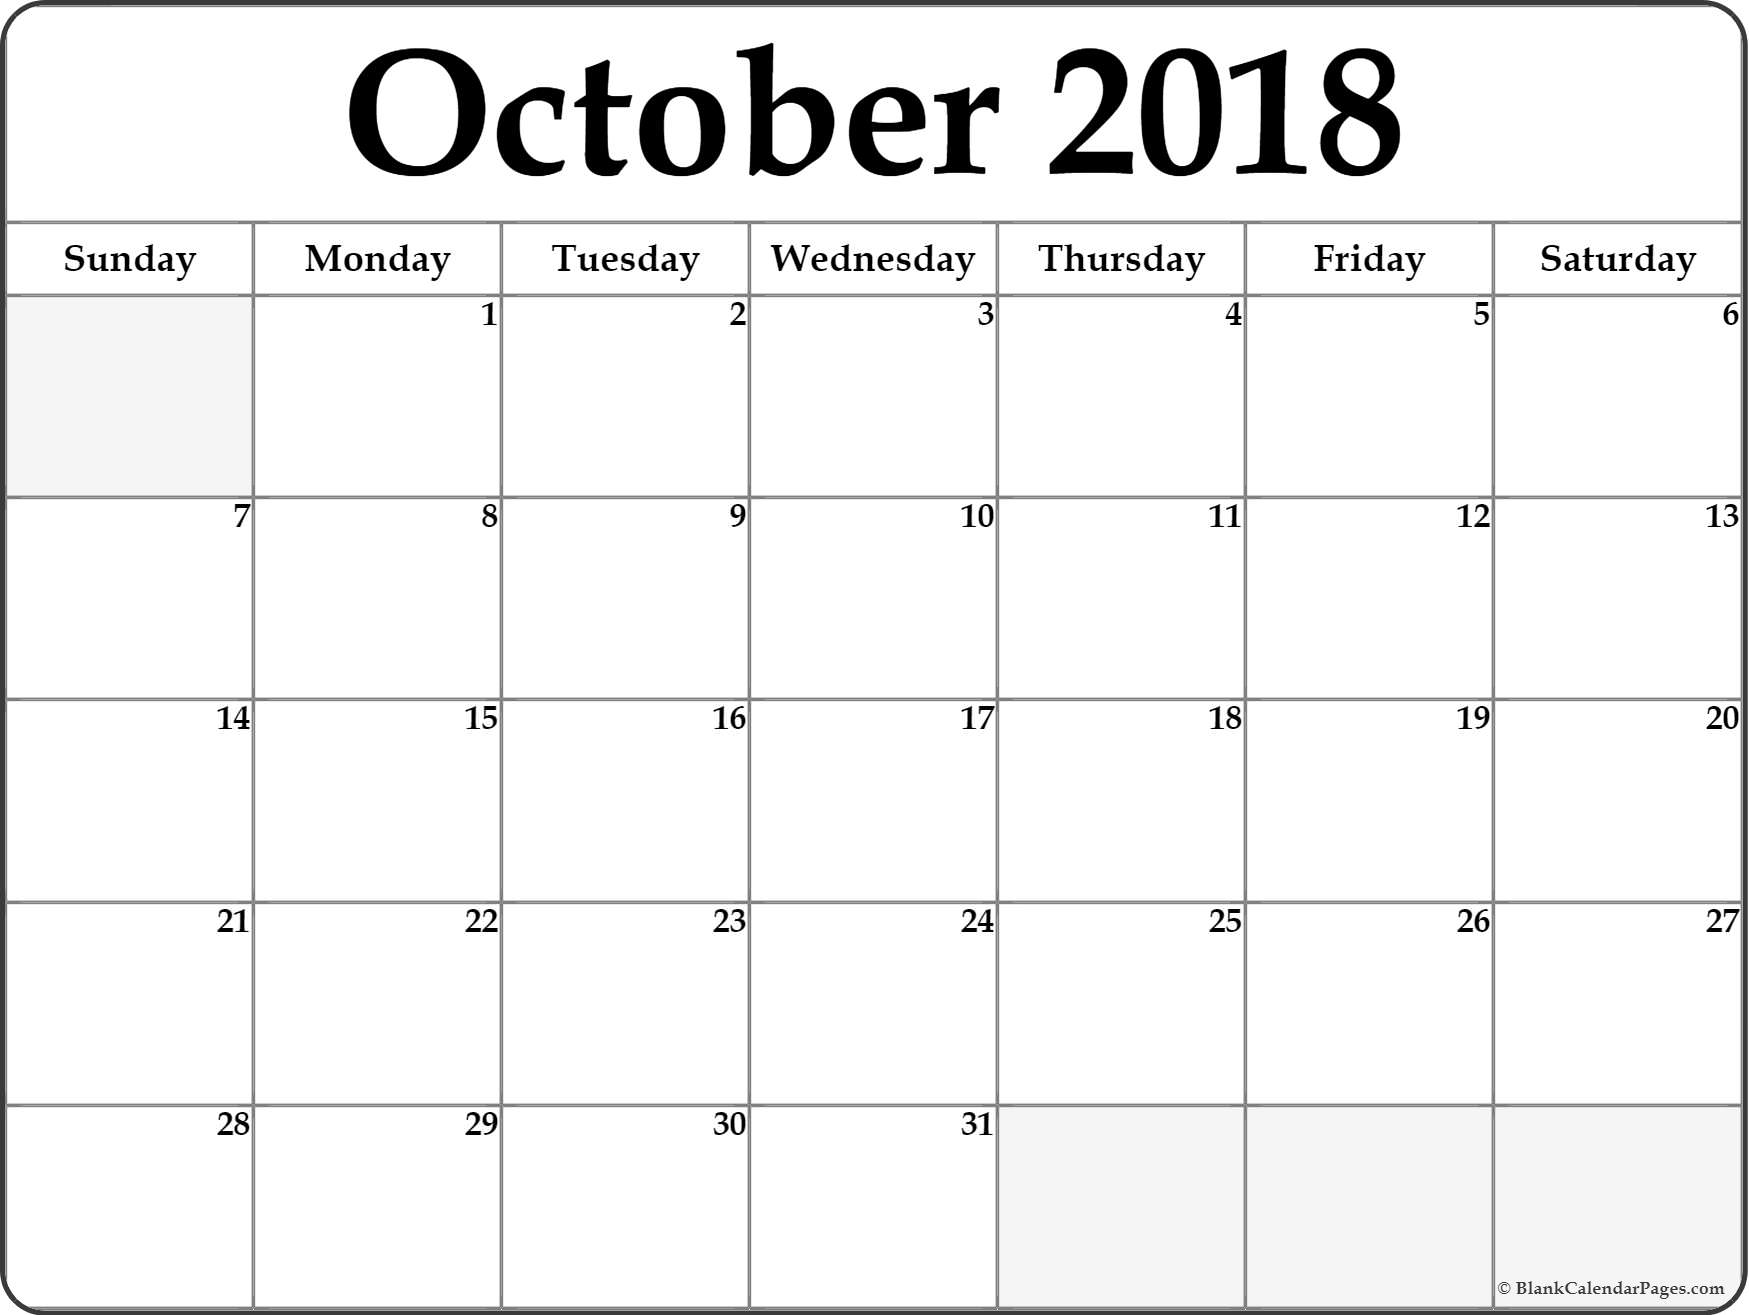 October 2018 Calendar In Spanish